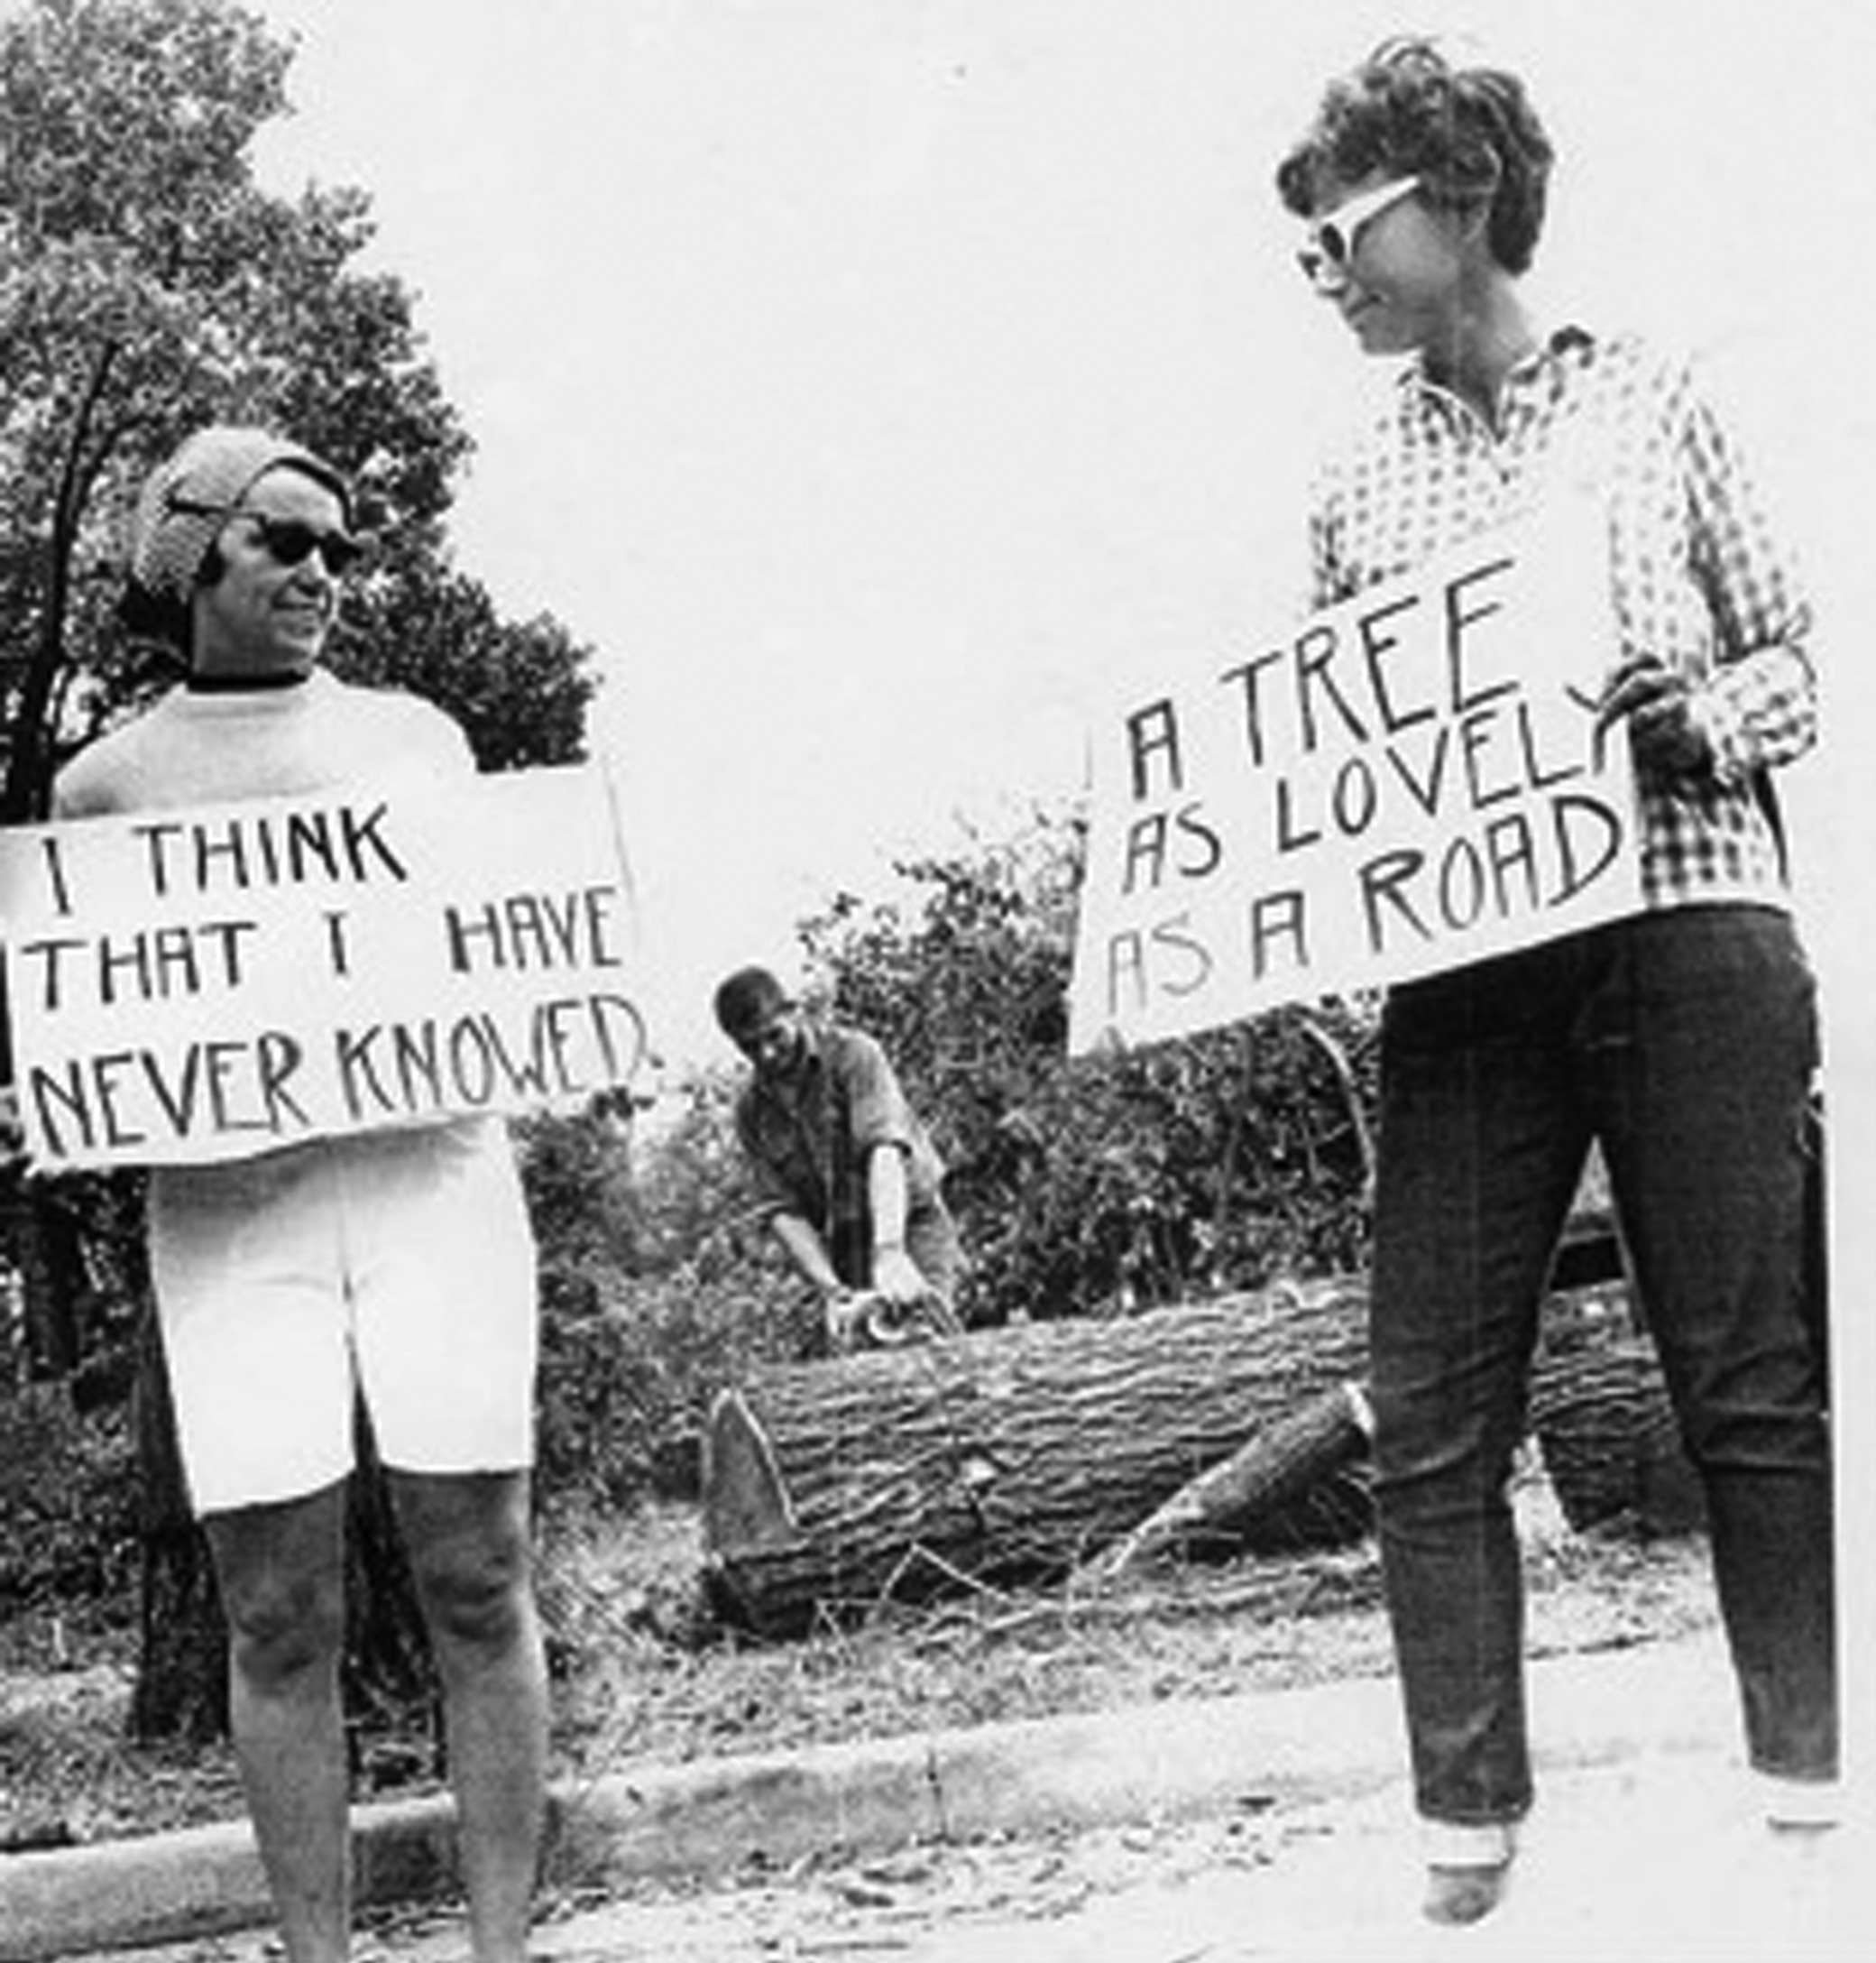 Kay Clement (on left) with unidentified demonstrator protesting the tree removal in Jackson Park, Jack Dykinga photographer, courtesy Sun-Times Media, 1965.